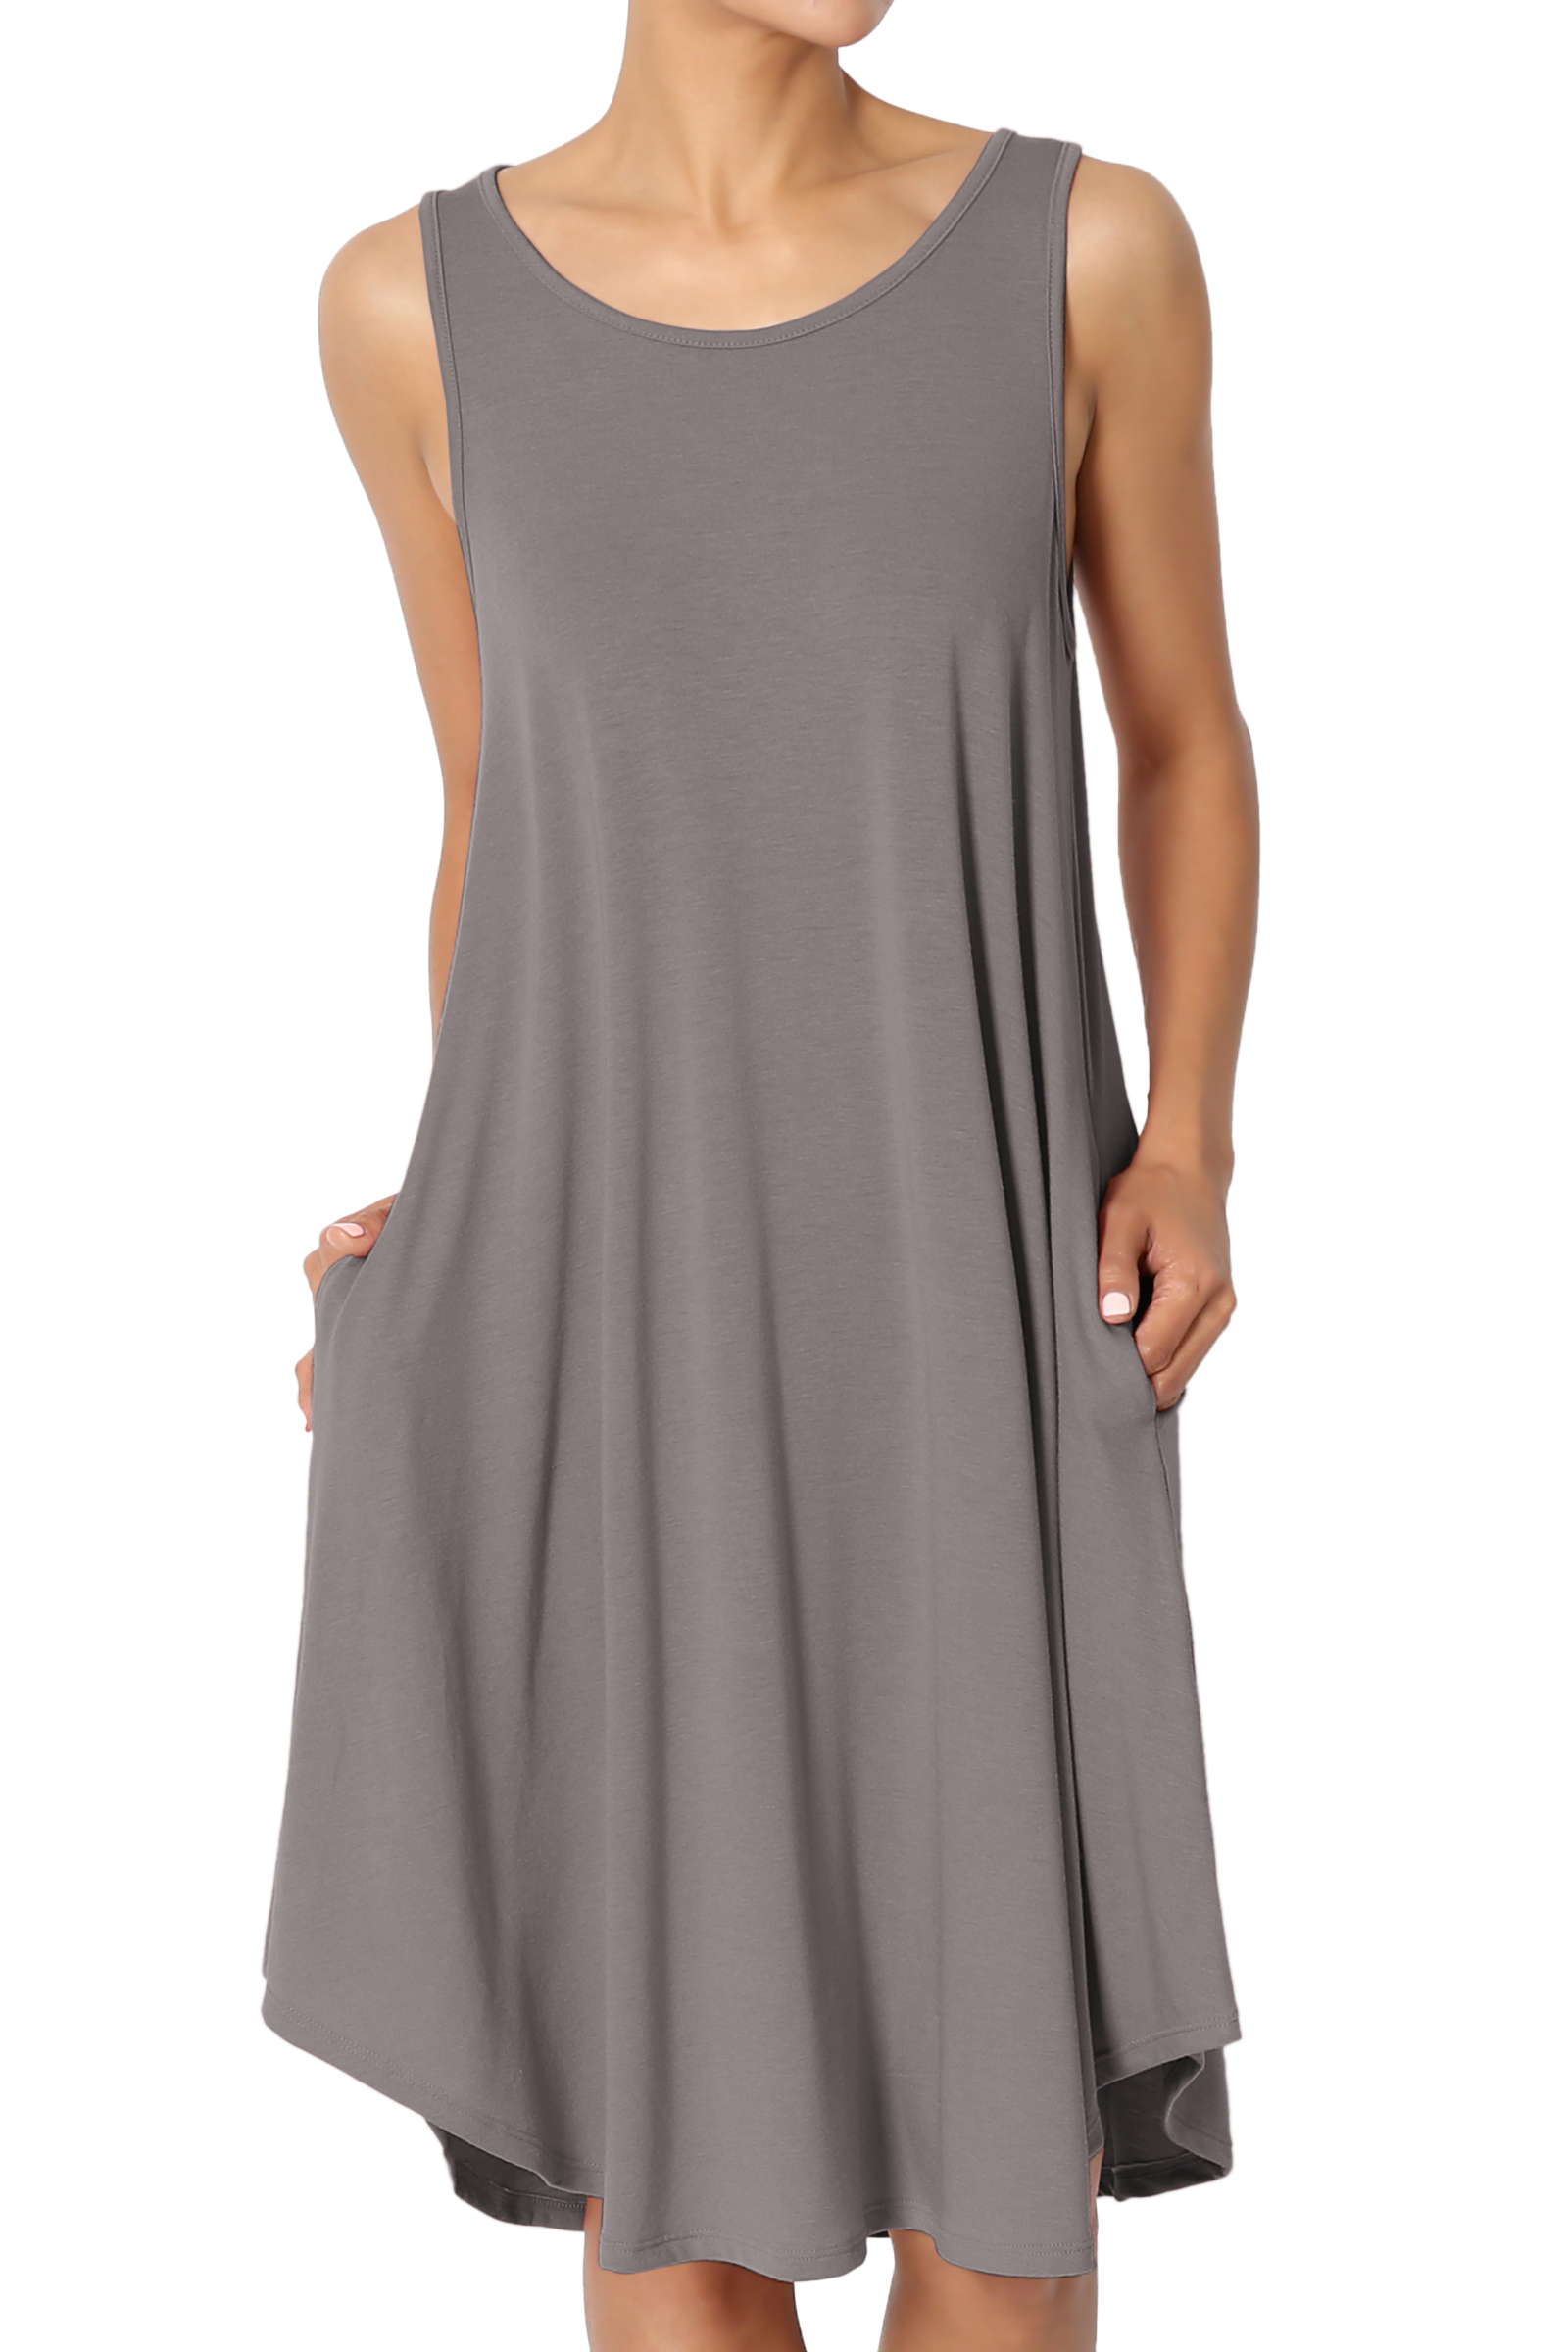 TheMogan Women's PLUS Sleeveless Trapeze Jersey Knit Pocket T-Shirt Tank Dress